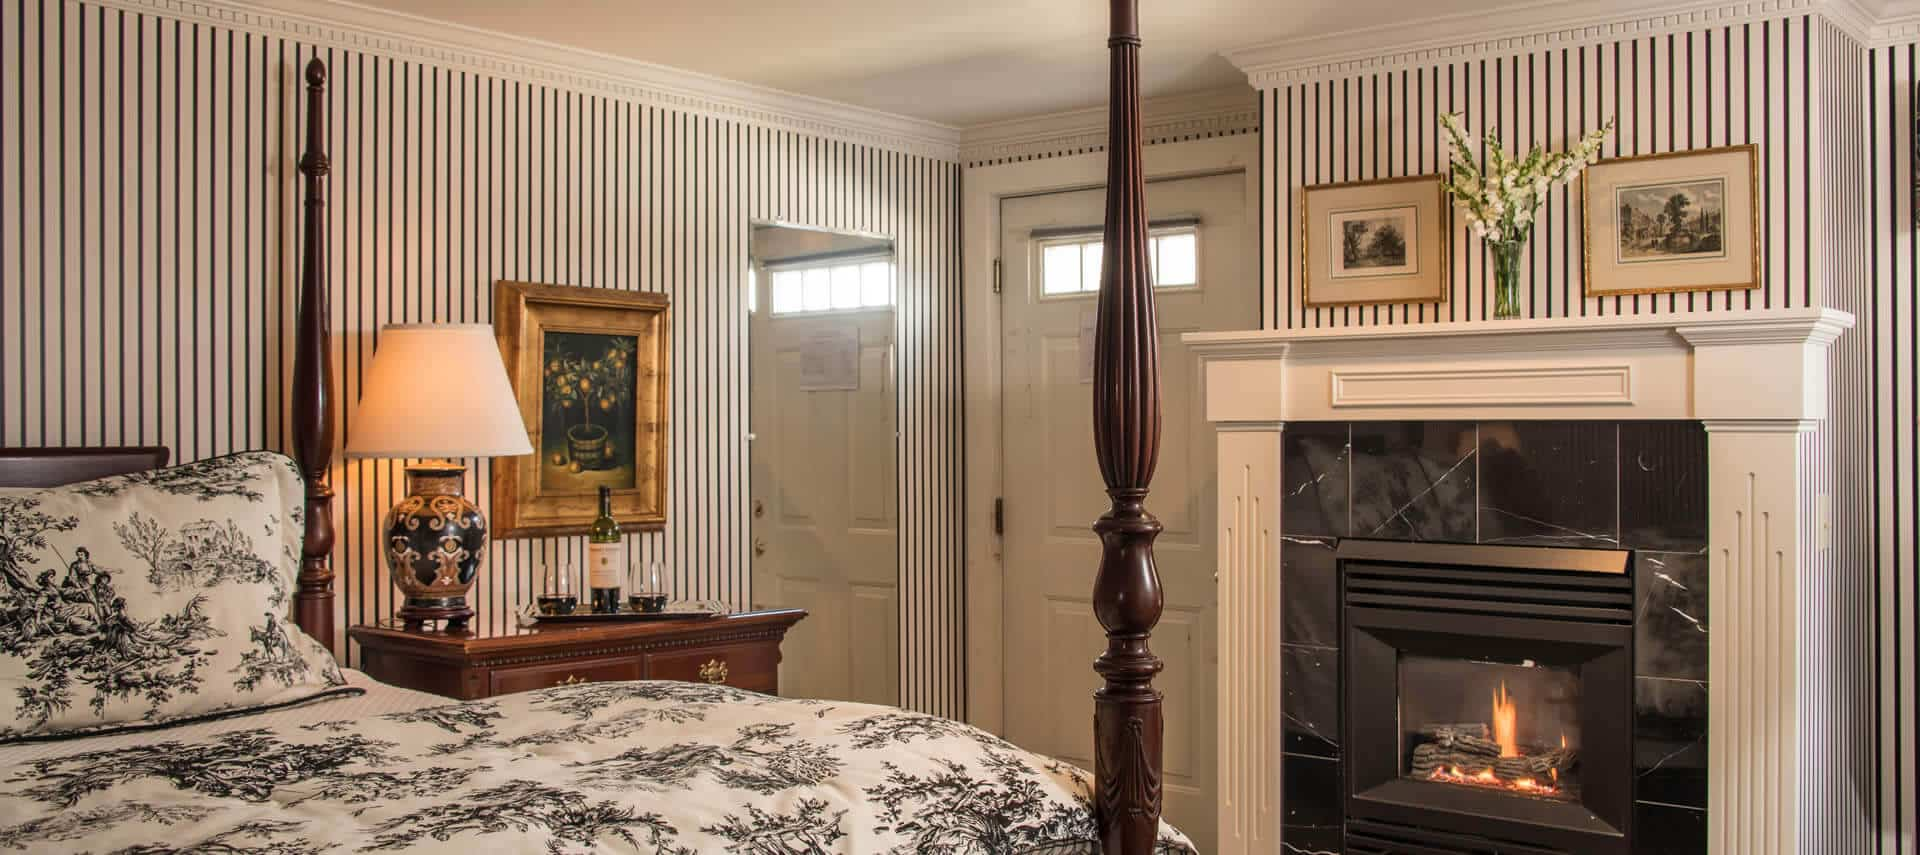 Bedroom with striped wallpaper, a fireplace and a four-post bed with a black and white patterned cover.